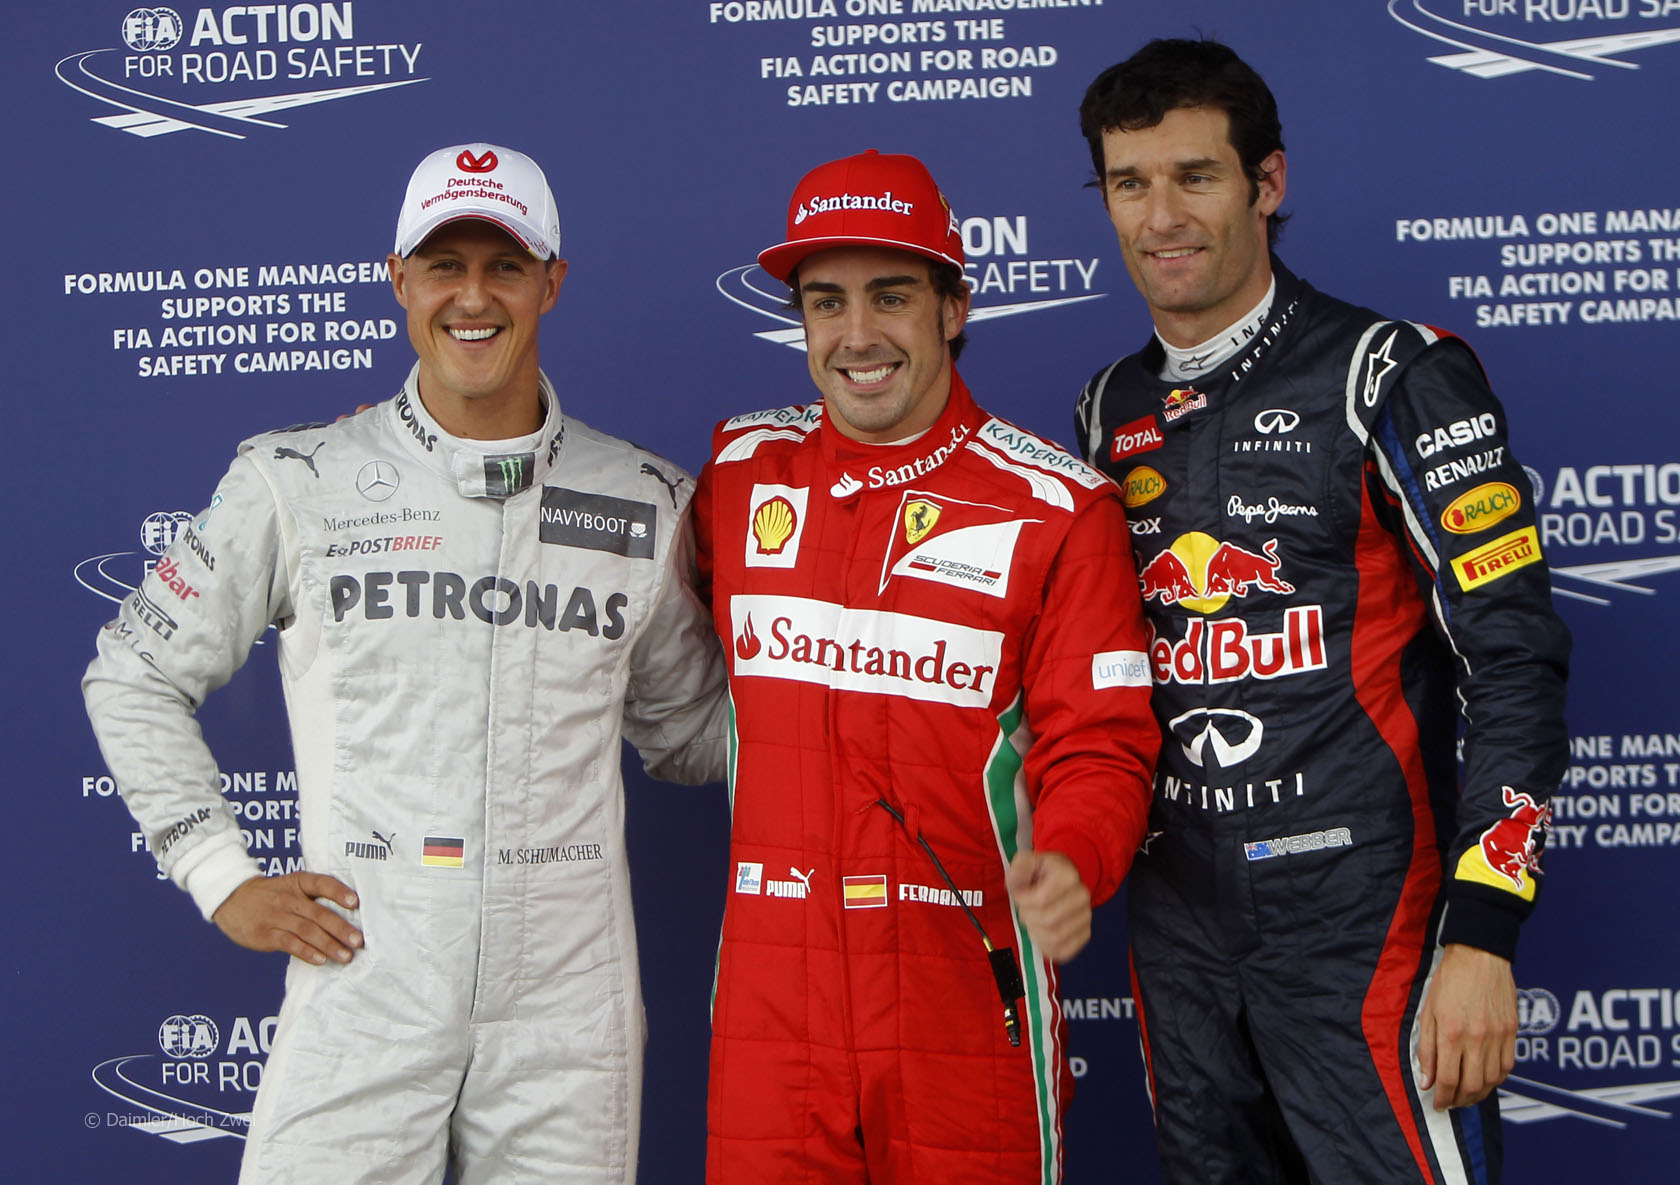 Motorsports: FIA Formula One World Championship 2012, Grand Prix of Great Britain